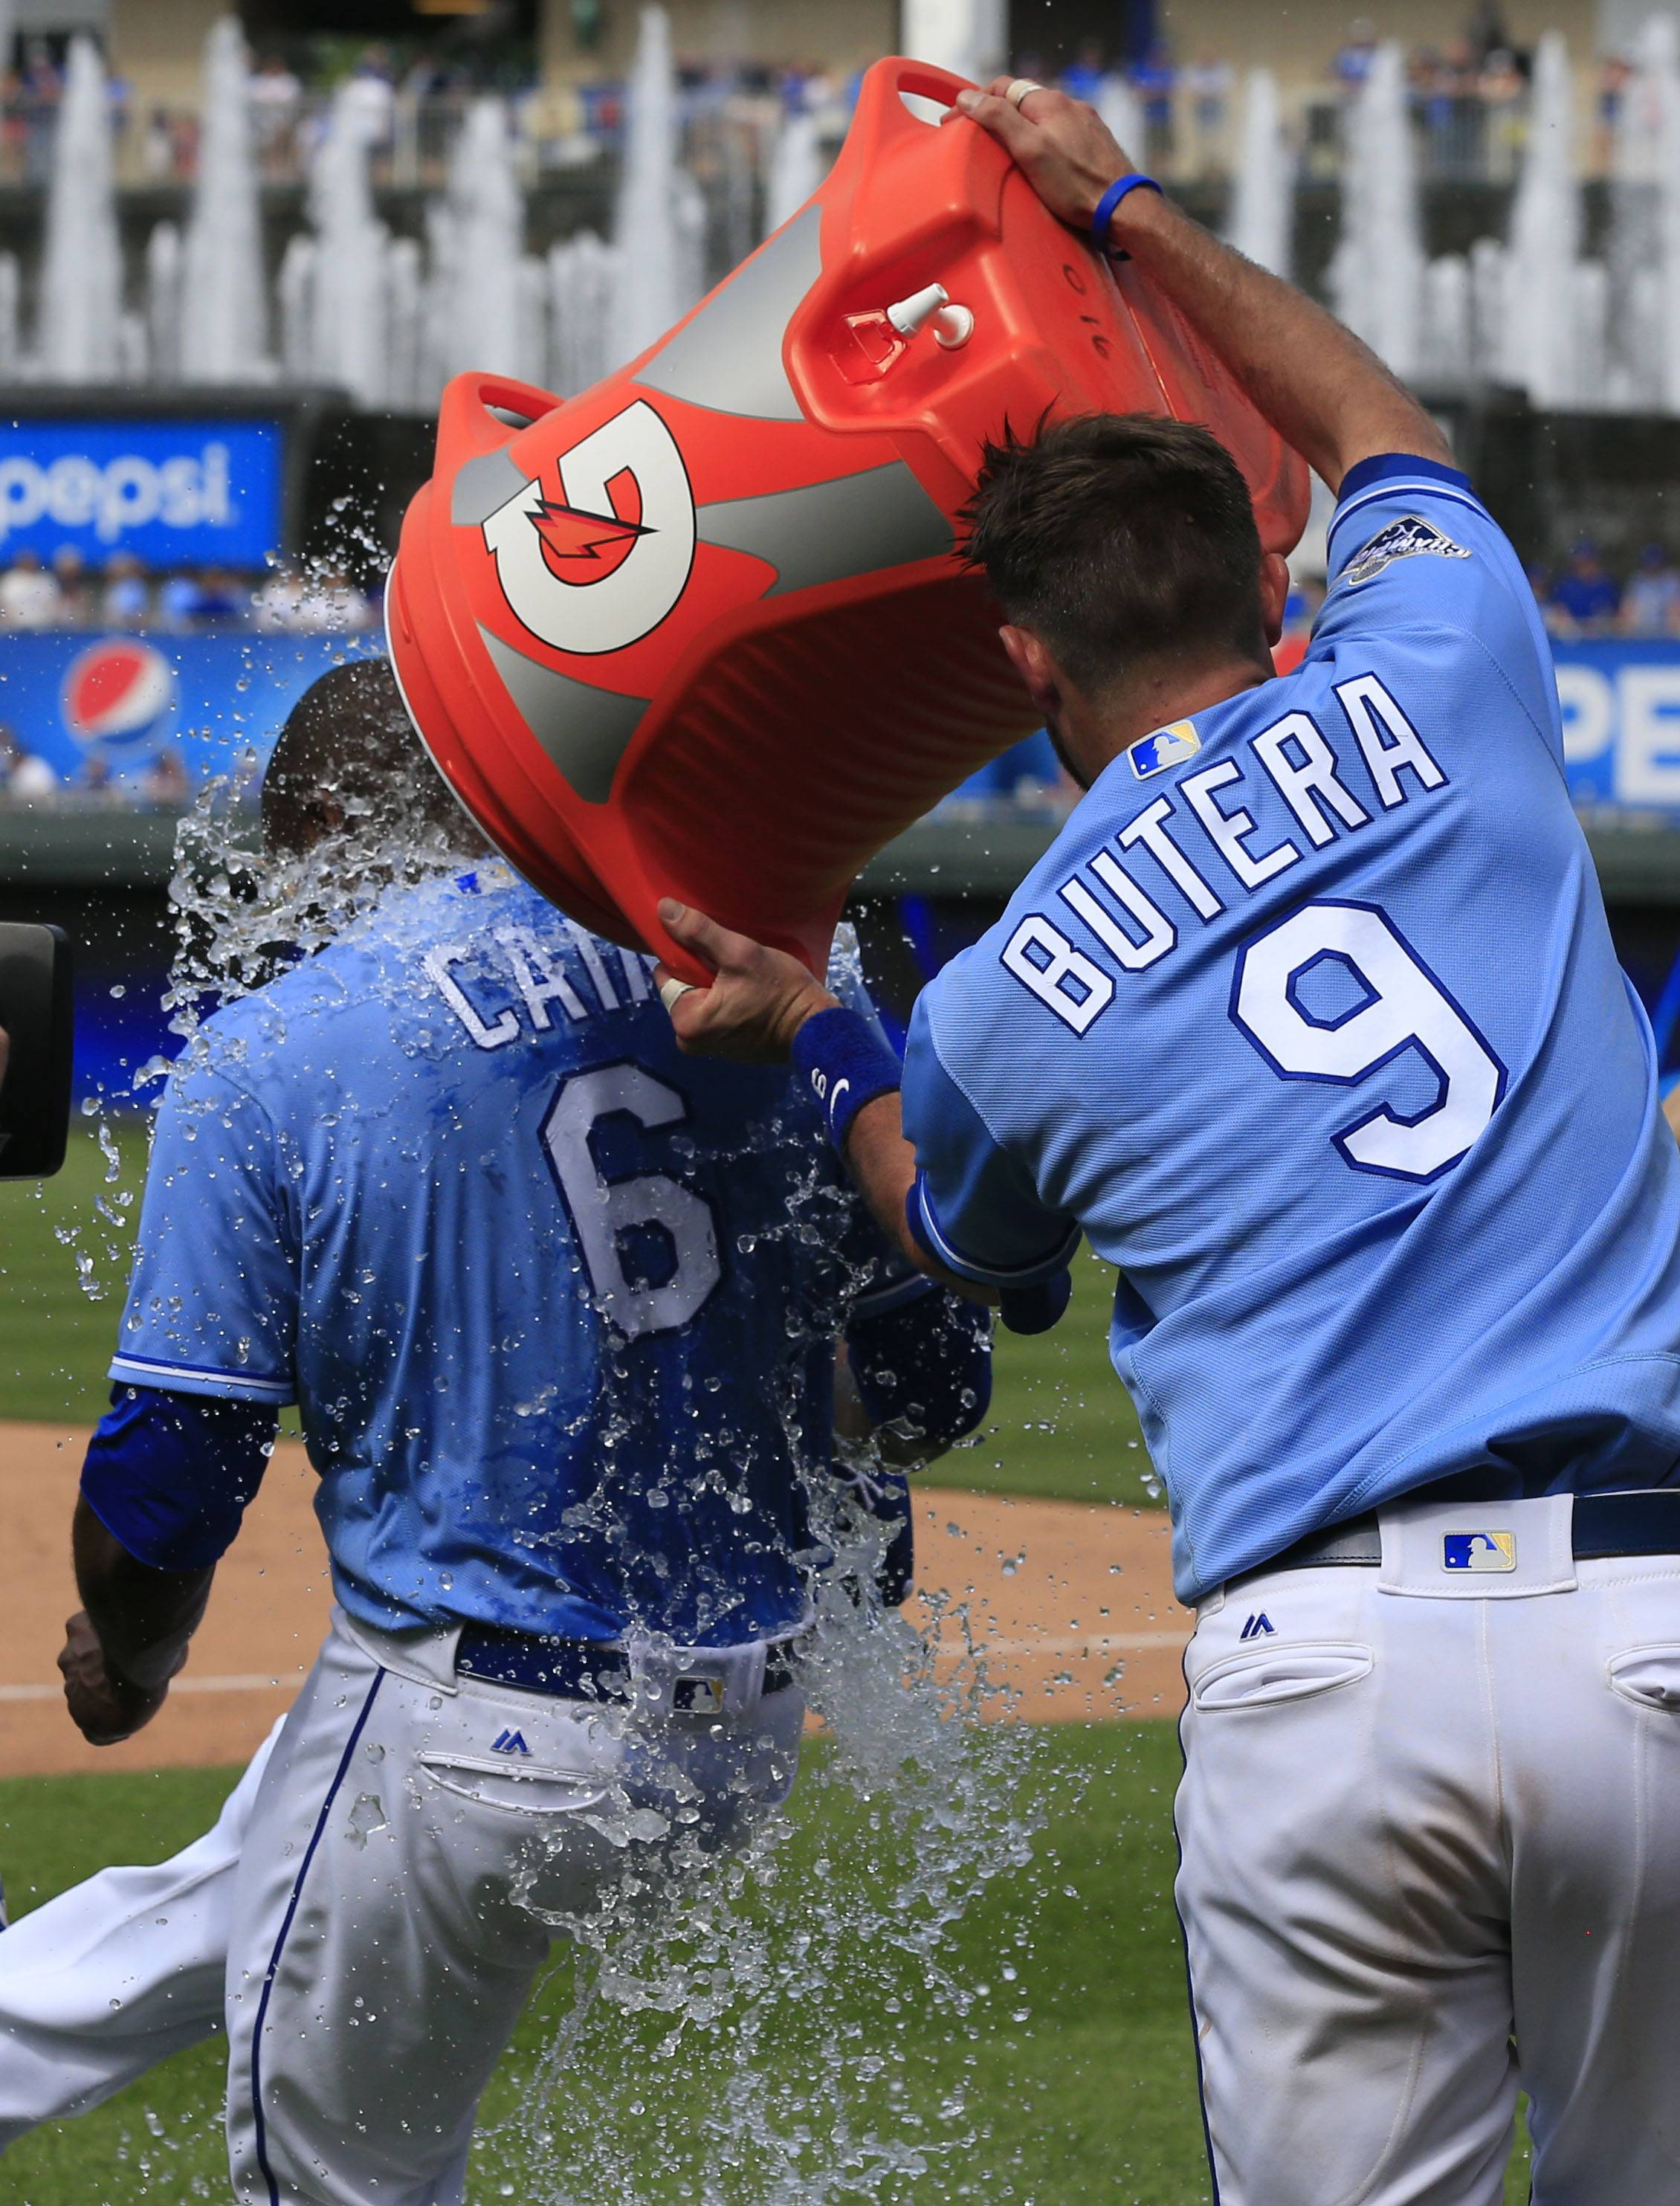 Kansas City Royals' Drew Butera (9) douses teammate Lorenzo Cain (6) following a baseball game against the Chicago White Sox at Kauffman Stadium in Kansas City, Mo., Sunday, May 29, 2016. The Royals defeated the White Sox 5-4.